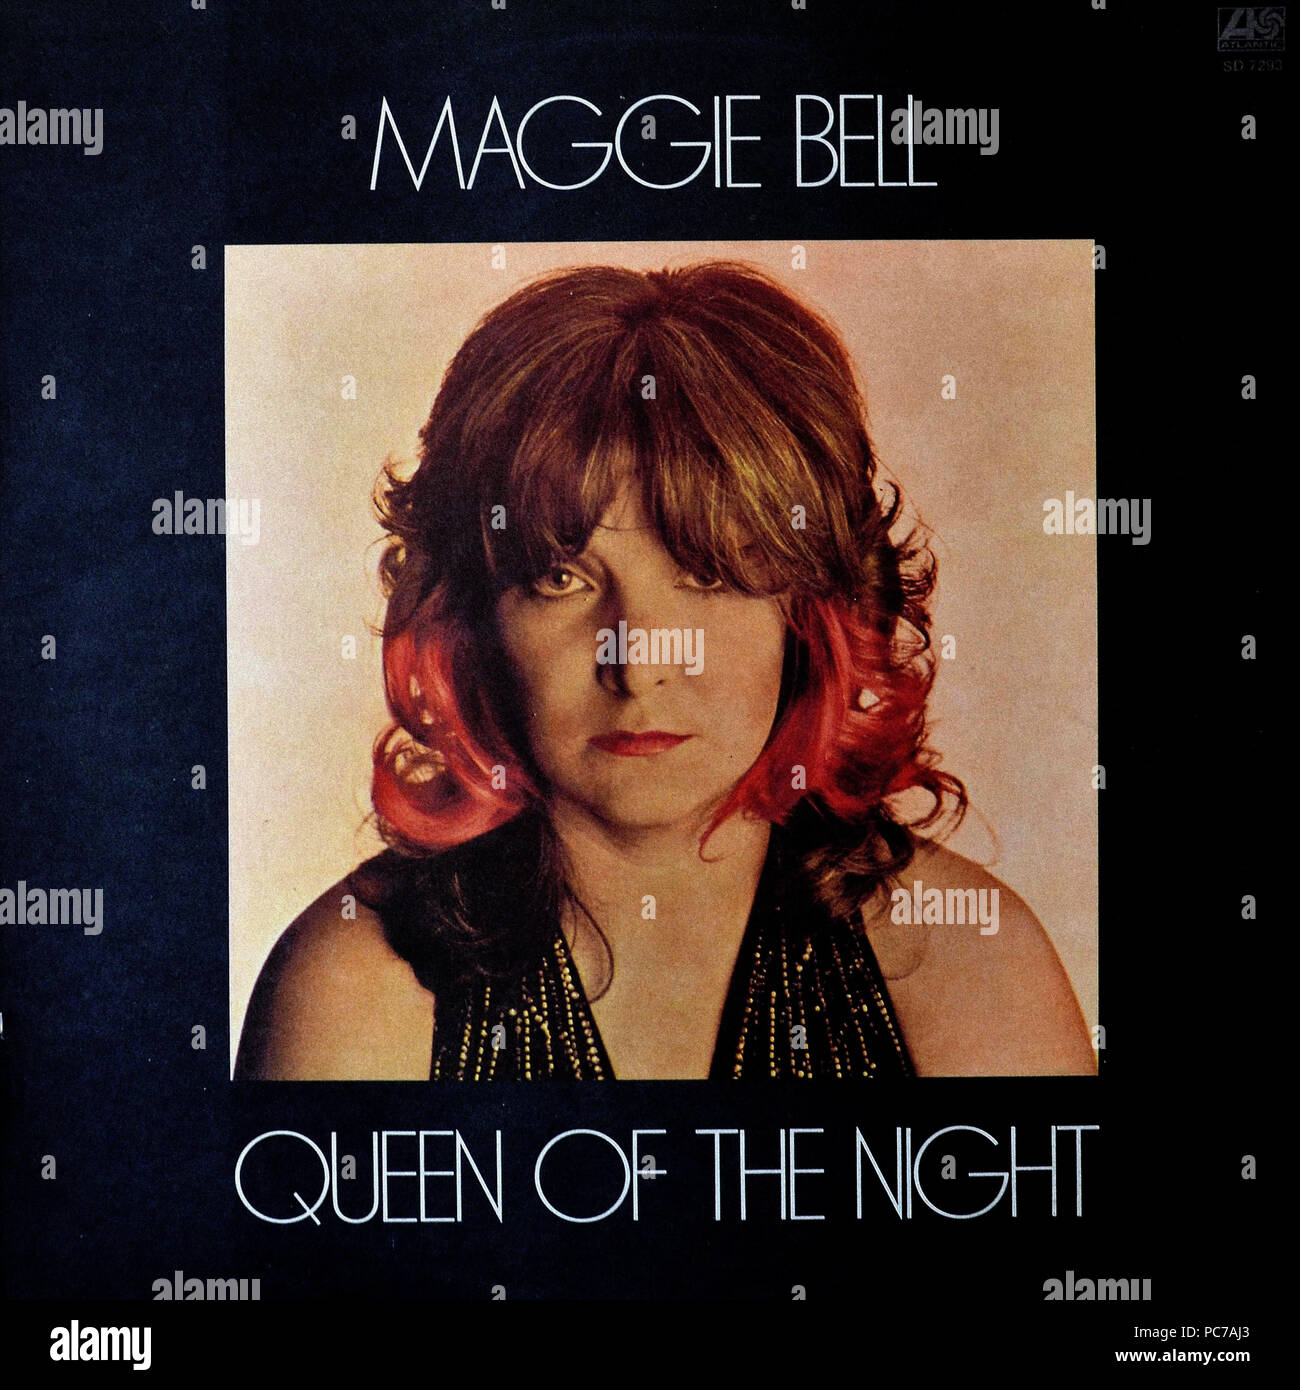 Maggie Bell - Queen Of The Night - Vintage vinyl album cover Stock